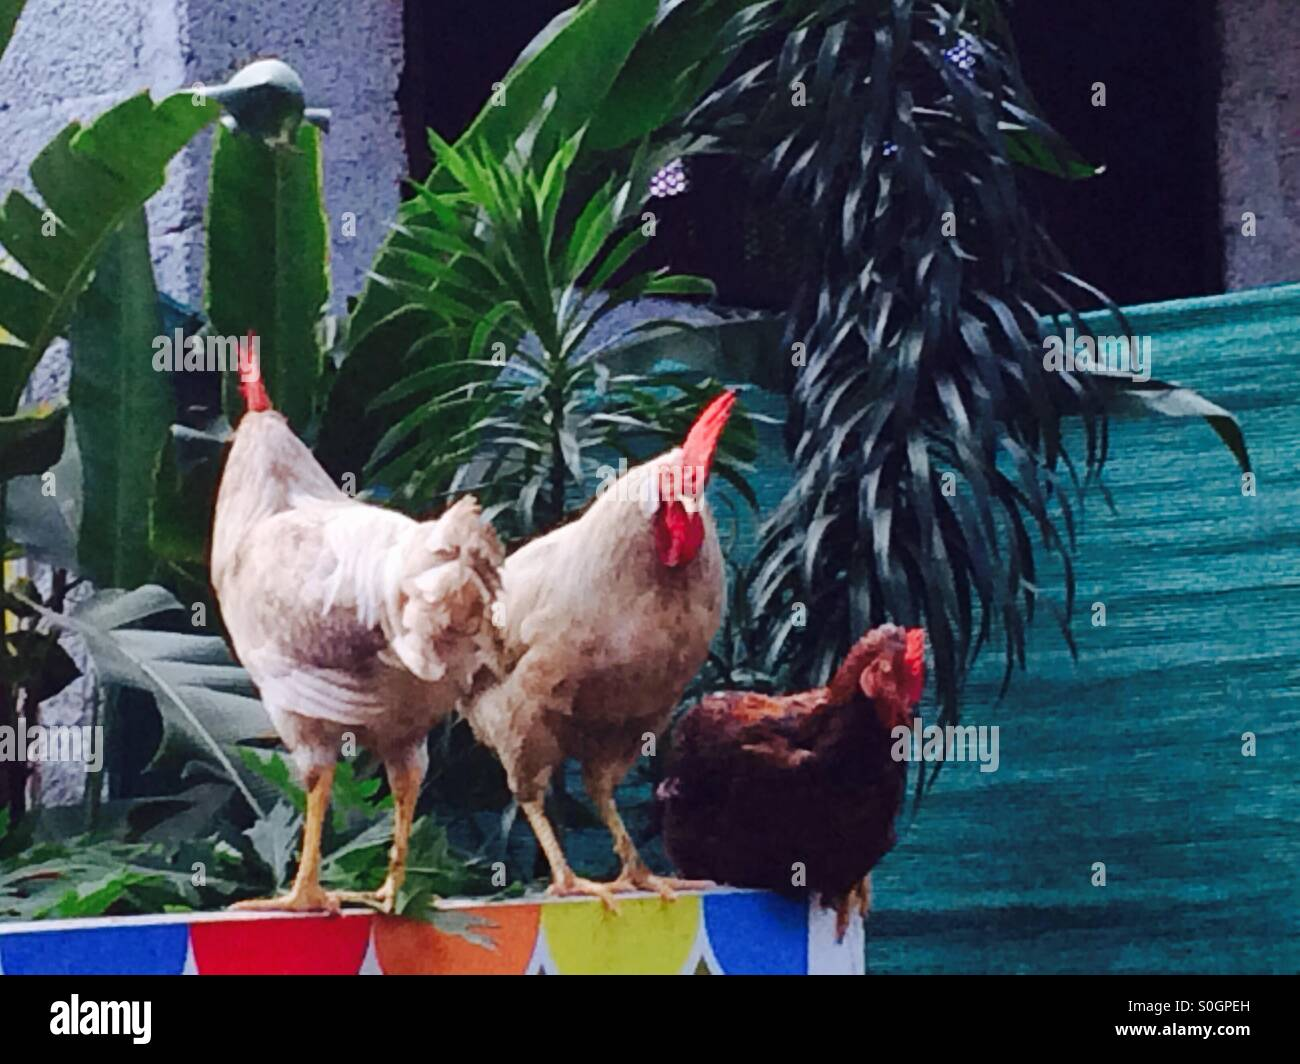 Hens in India - Stock Image